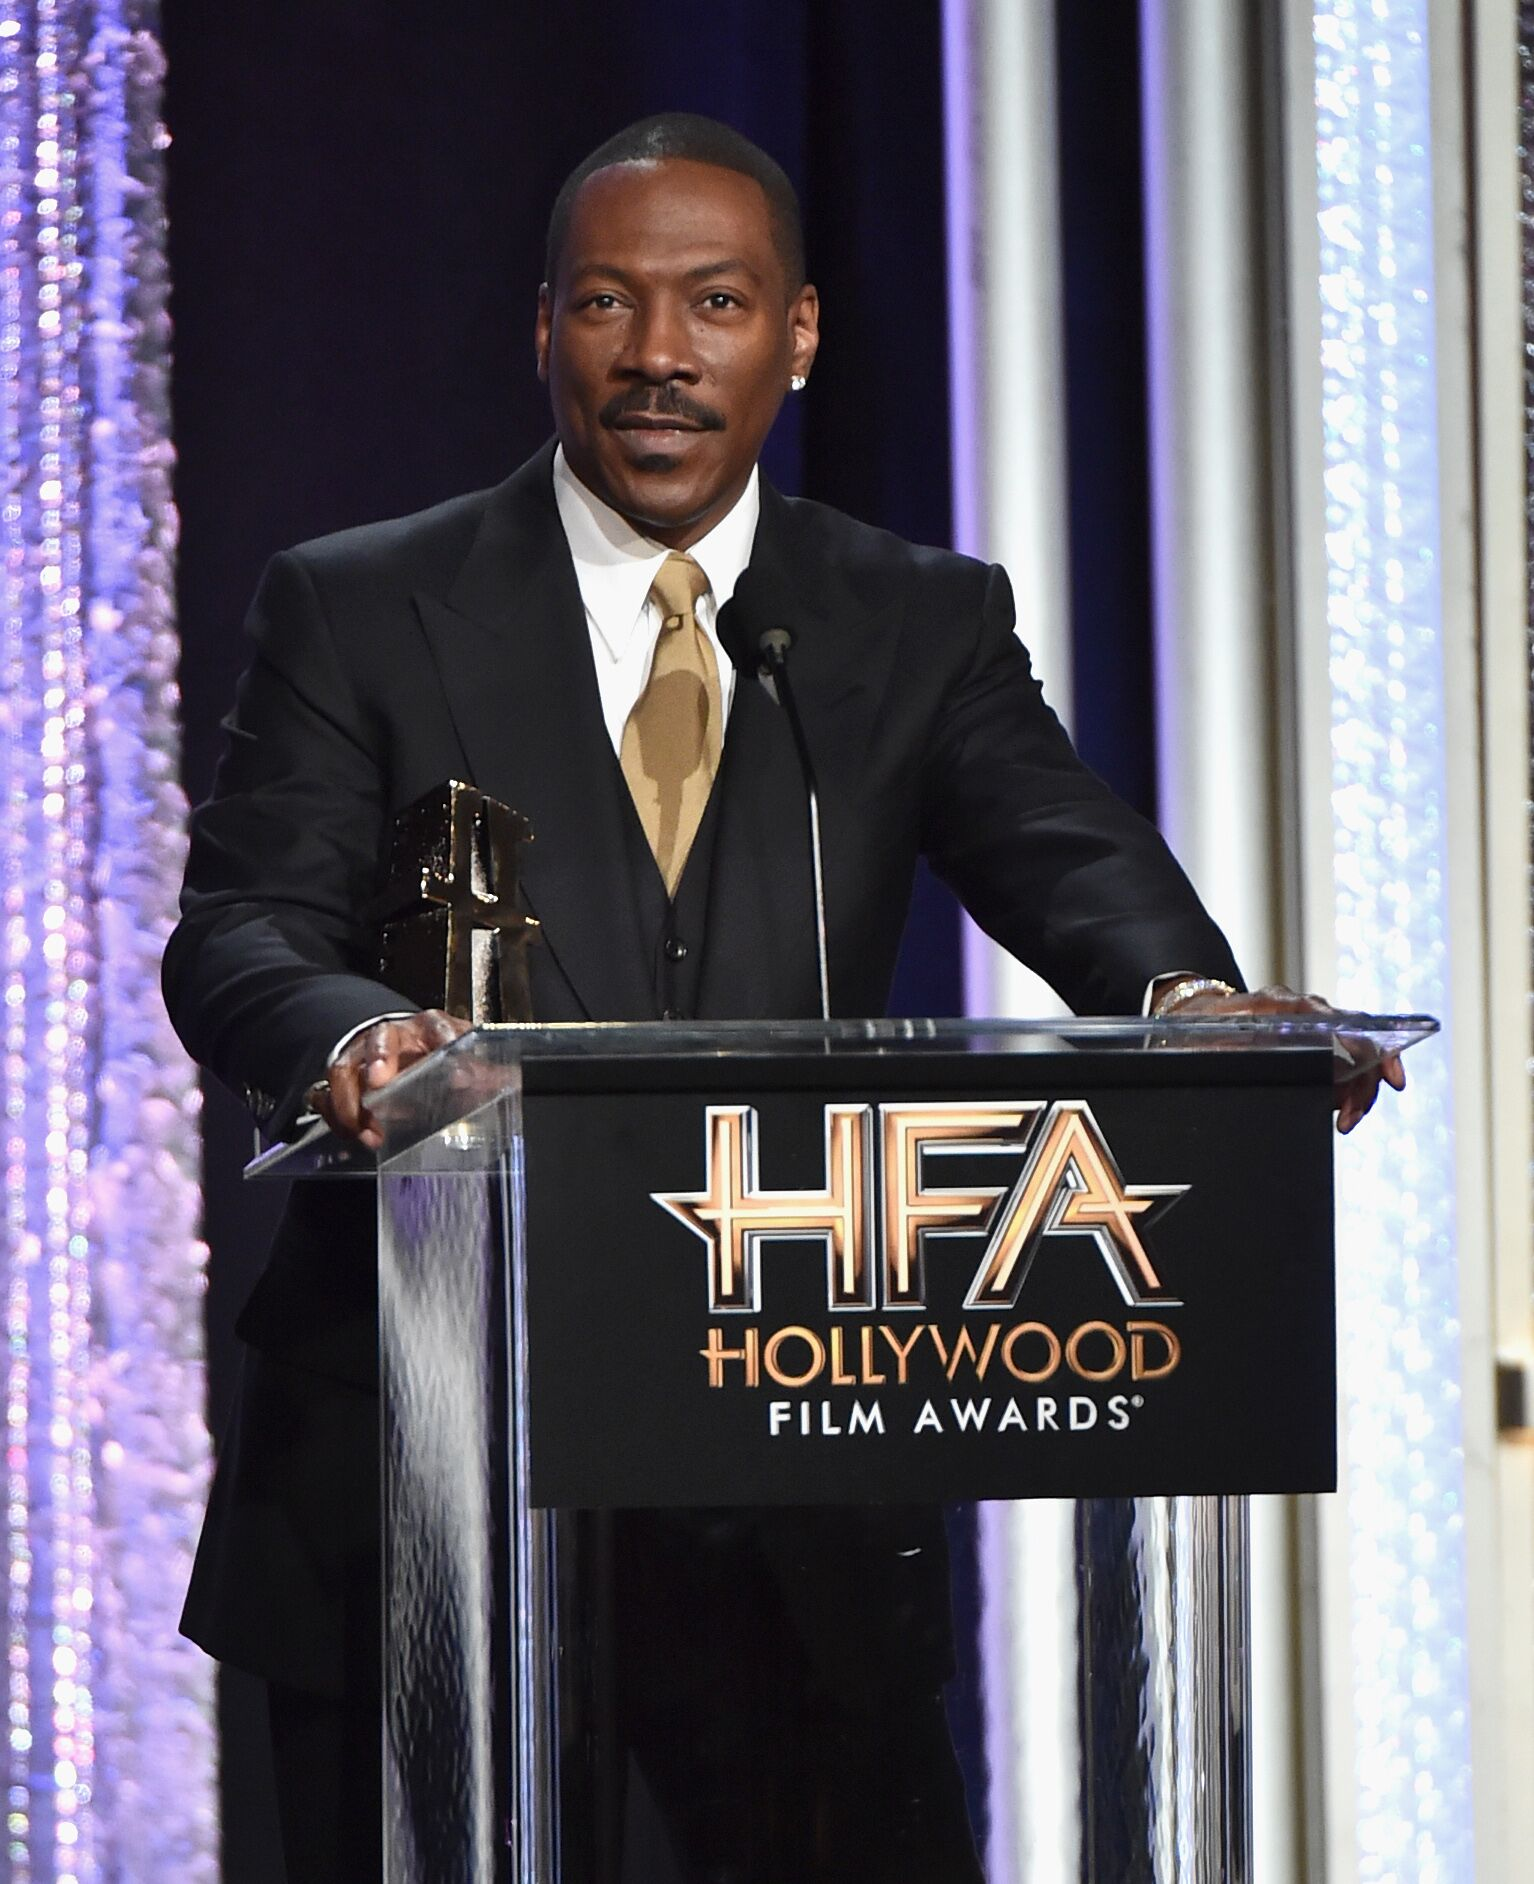 Eddie Murphy at the Hollywood Film Awards | Source: Getty Images/GlobalImagesUkraine